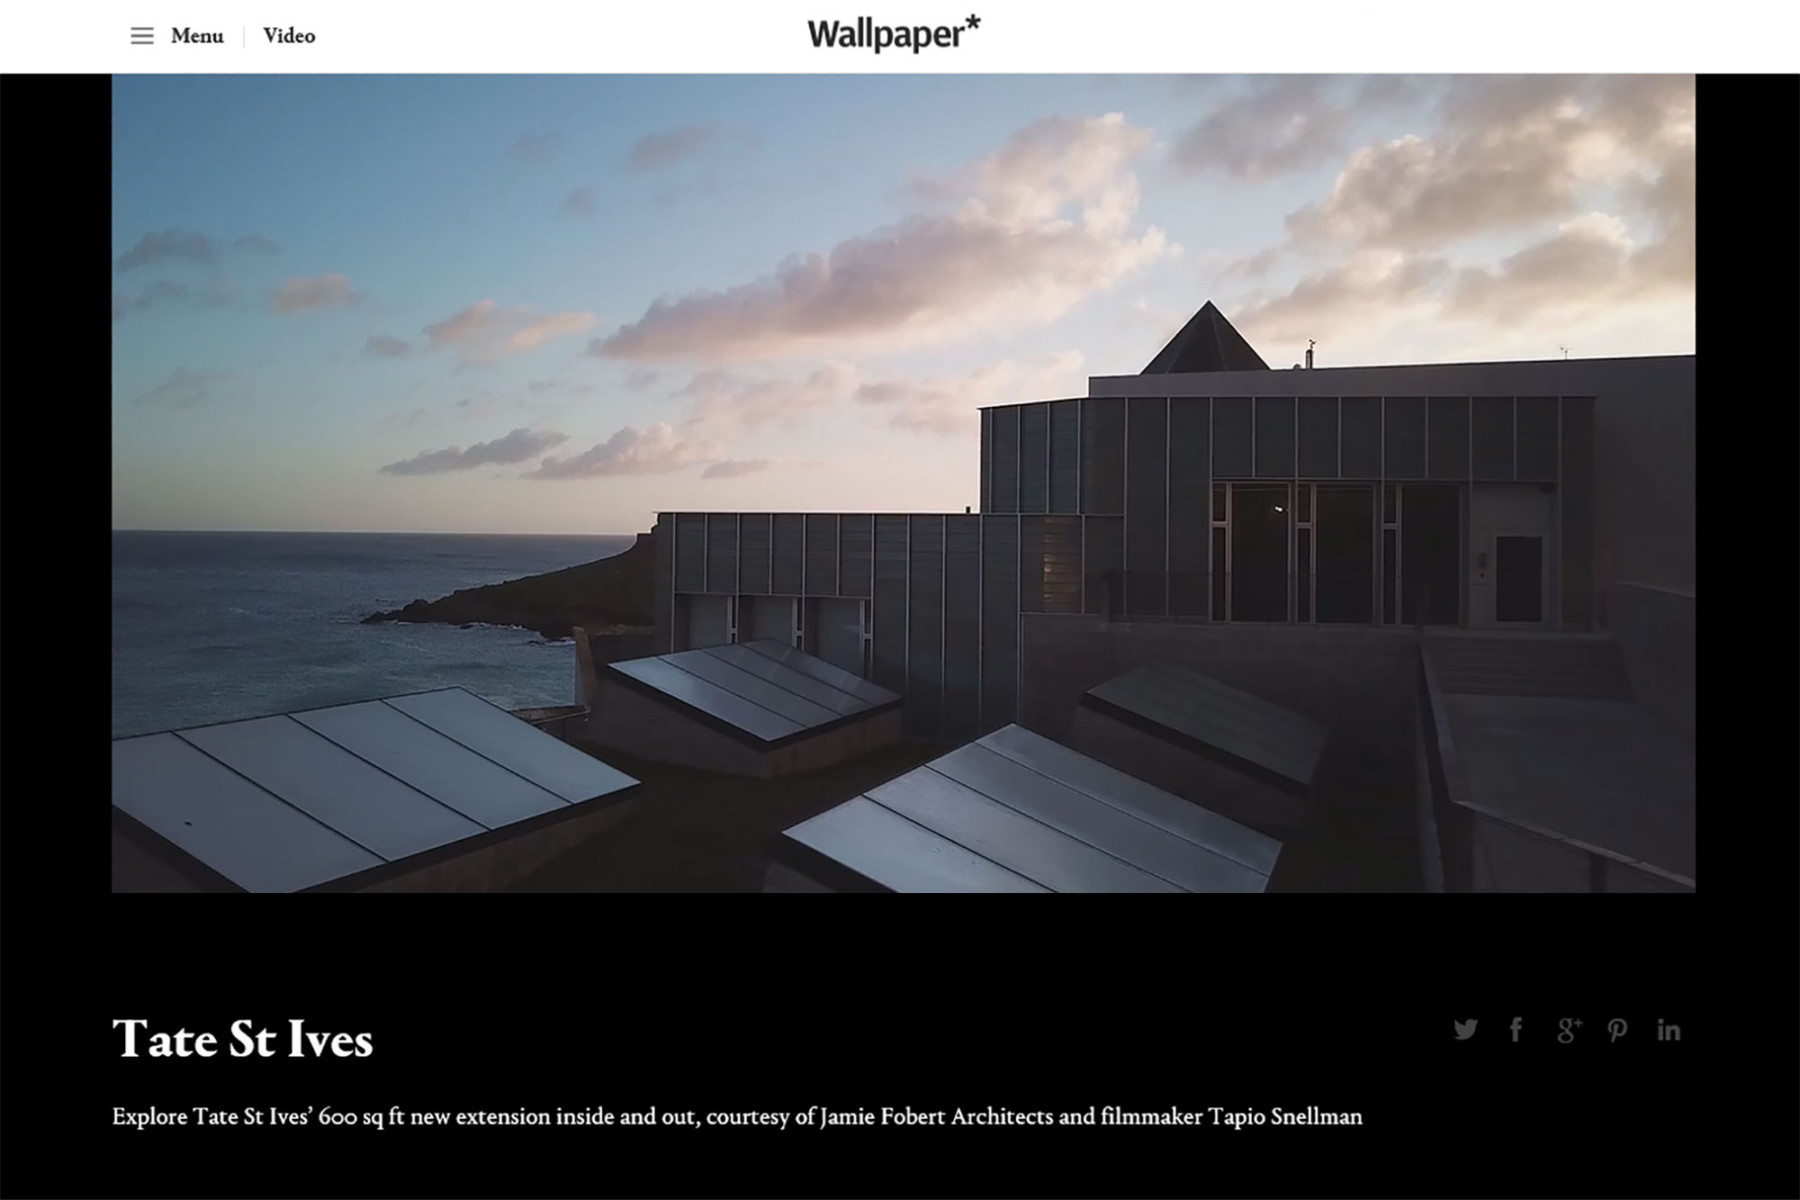 Jamie-Fobert-Architects-Wallpaper-Magazine-Tate-St-Ives-Cultural-Gallery-Modern-Contemporary-Project-Tapio-Snellman-Video